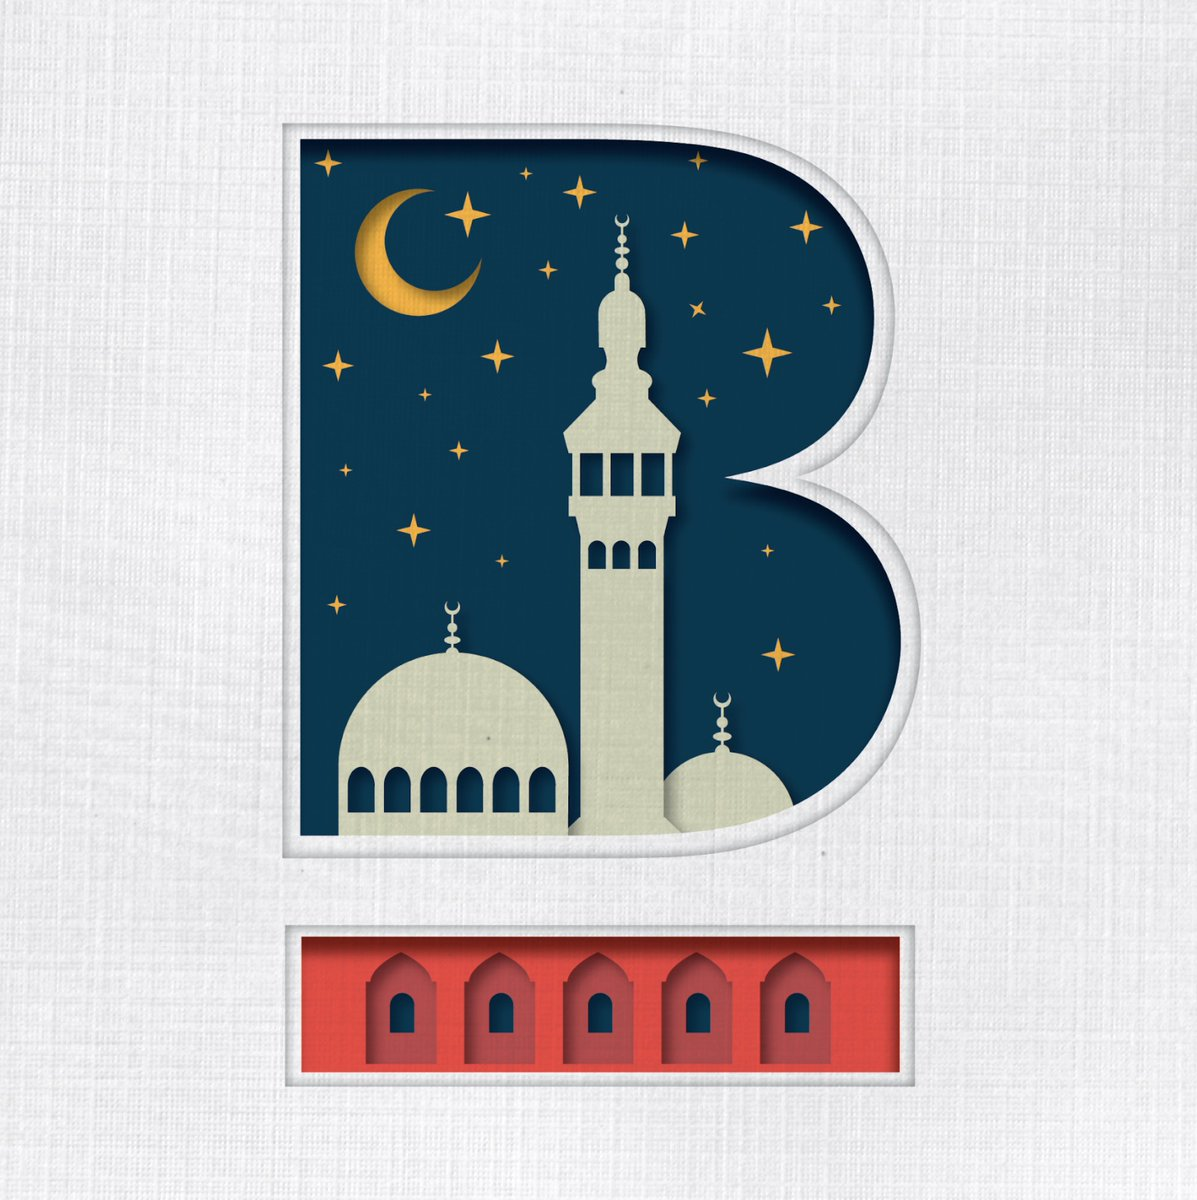 Eid Mubarak to everyone celebrating the end of #Ramadan! Wishing you and your families a successful end of fasting and a wonderful #EidAlFitr.pic.twitter.com/qO7qaF0K7r